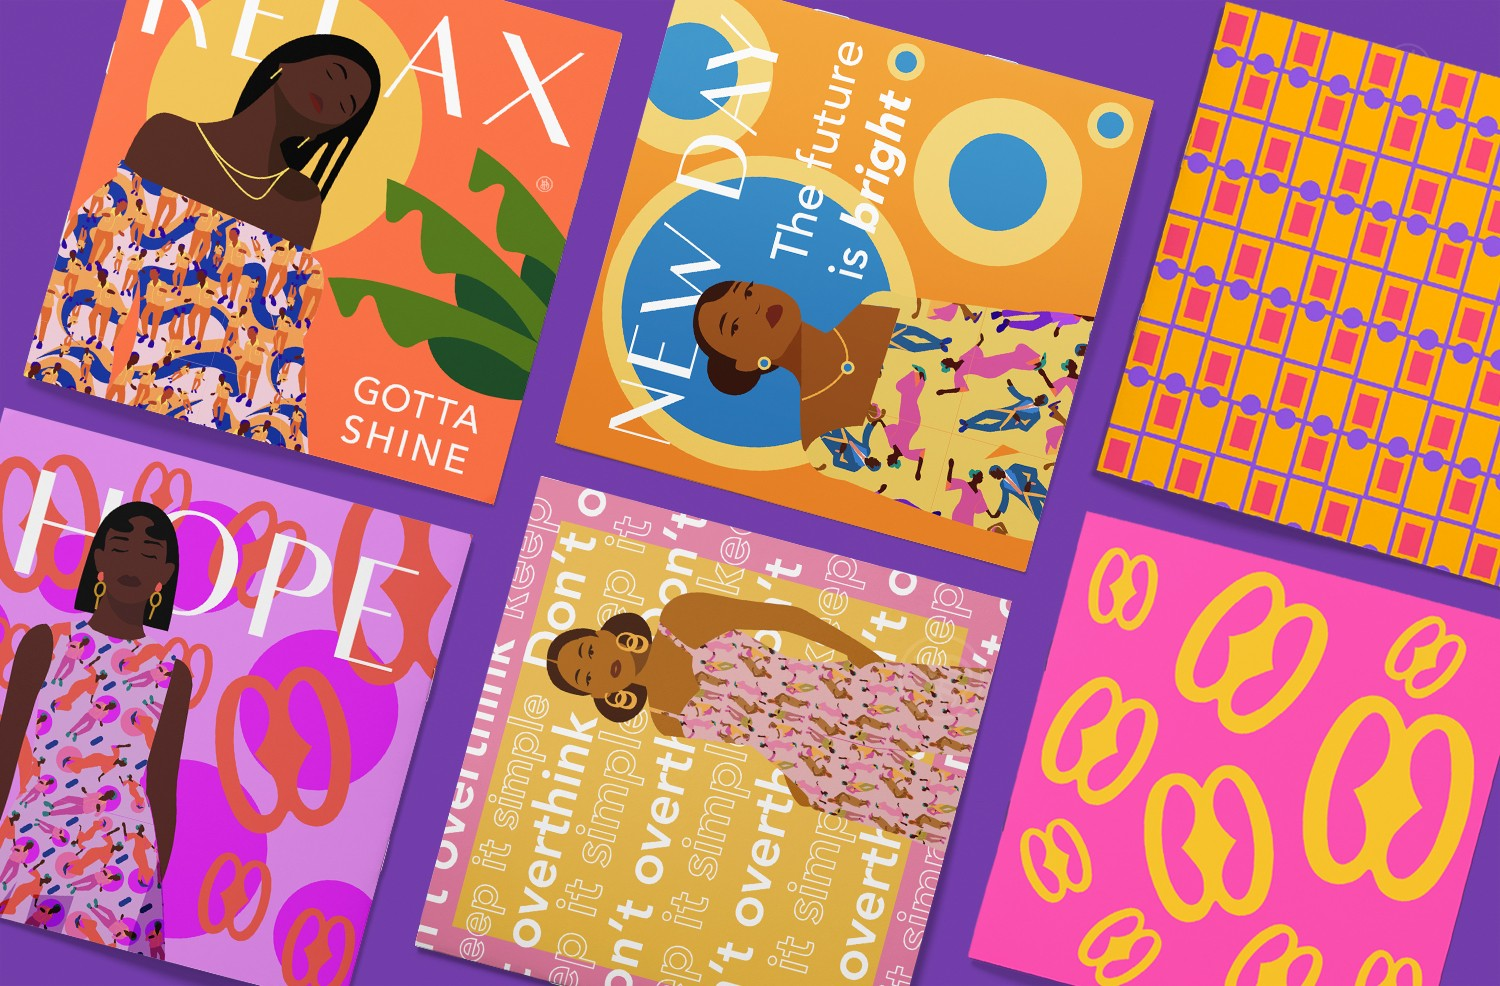 A series of 6 posters laid out in a grid format on a purple background. The posters feature flat graphic illustrations of women. Each one wears a different pattern from my collection. Words/terms like Relax, Hope, and New Day, etc. are used as titles. Add